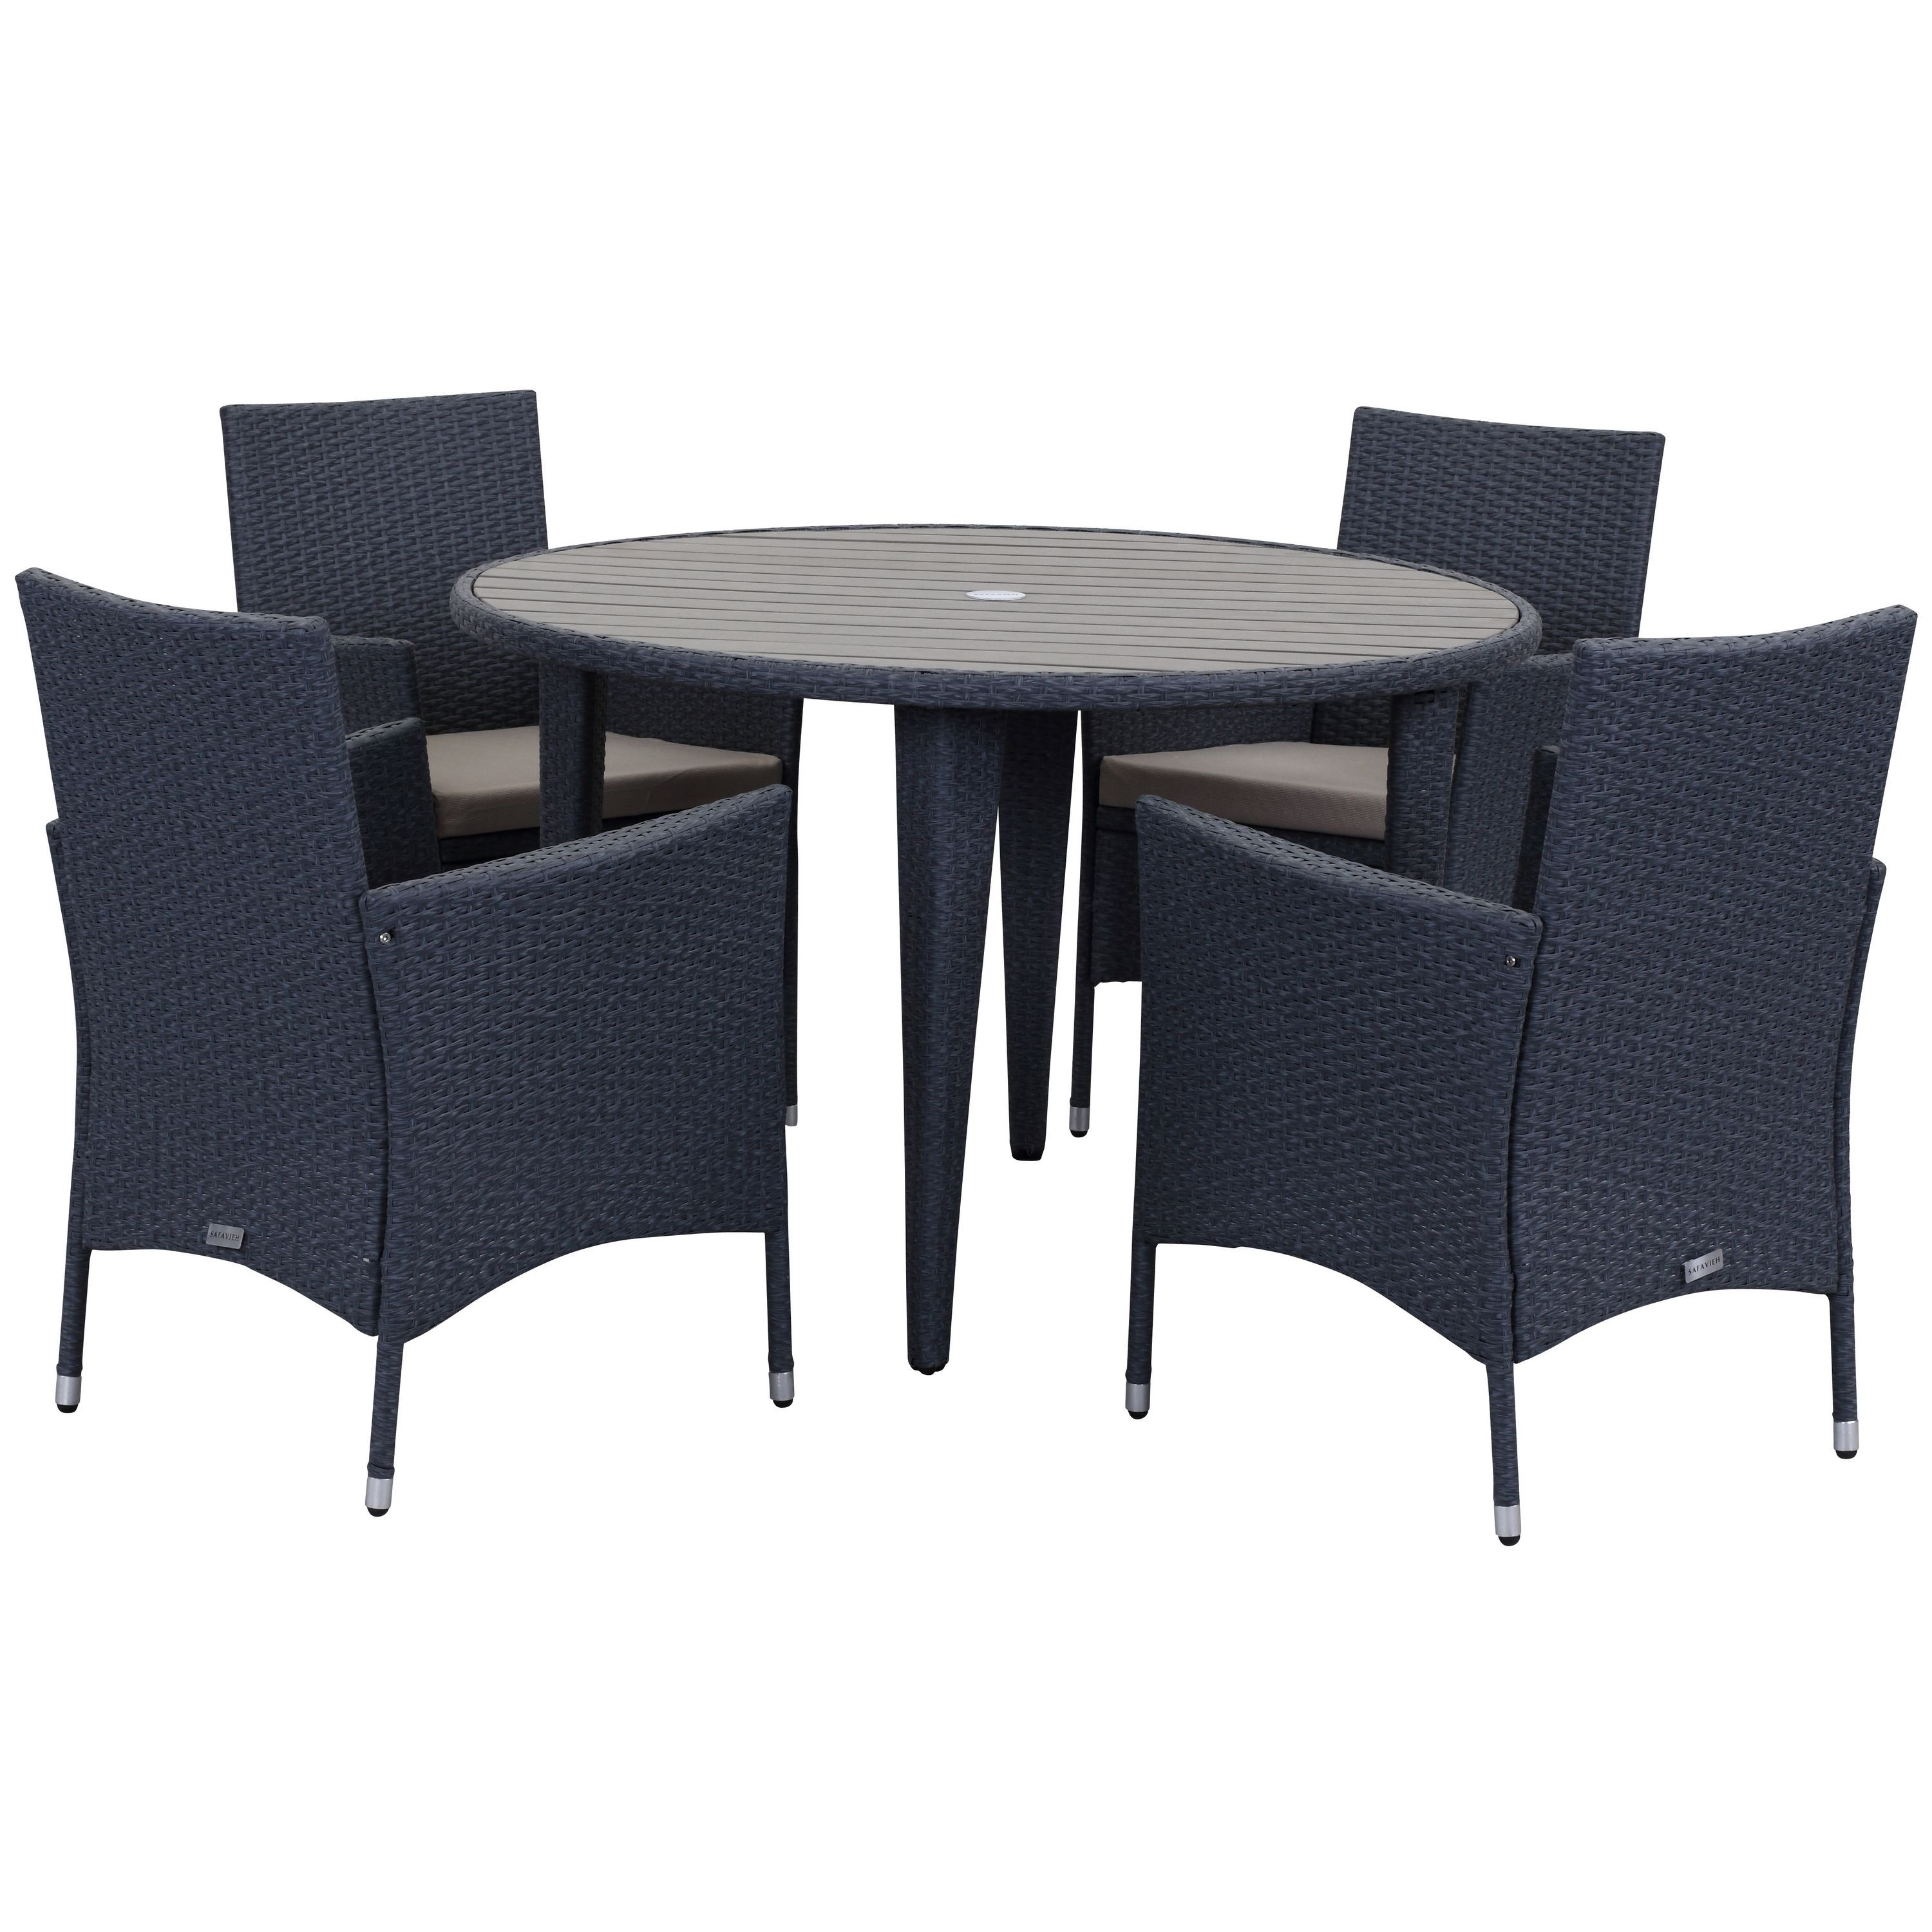 With the sophistication of an al fresco dining room at a luxe